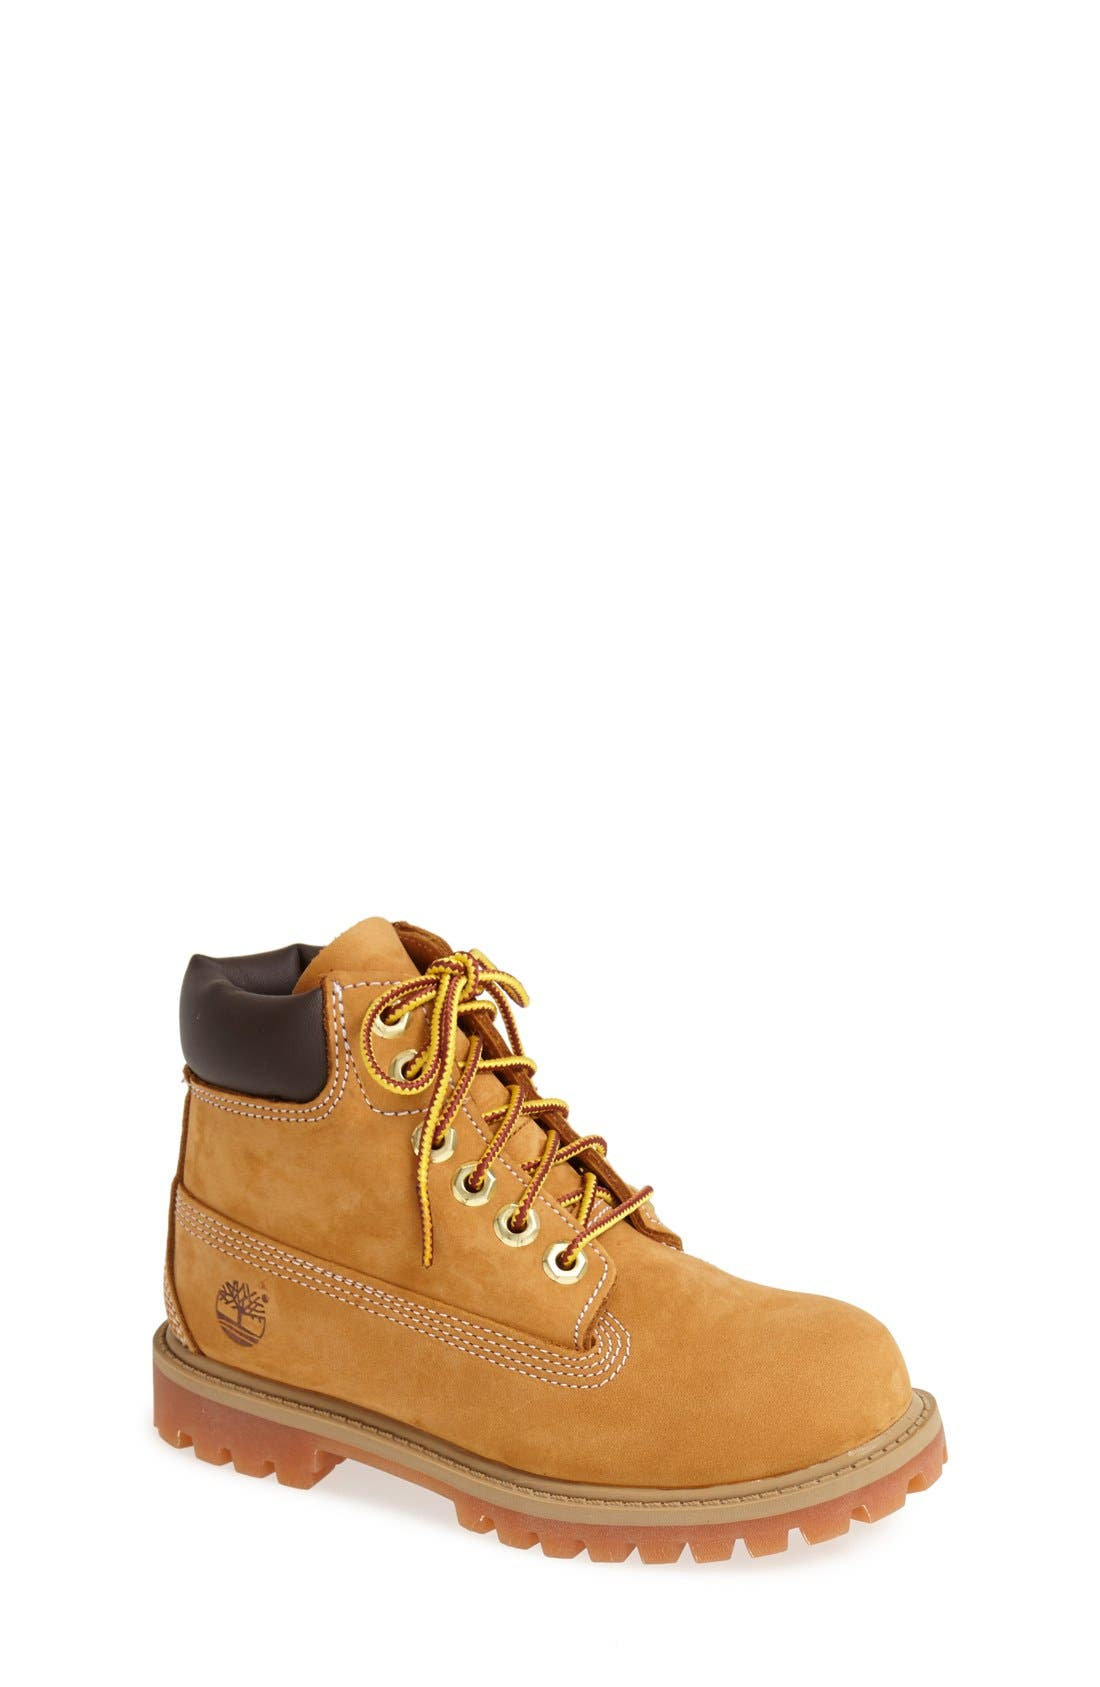 Main Image - Timberland '6 Inch Premium' Waterproof Boot (Toddler, Little Kid & Big Kid)